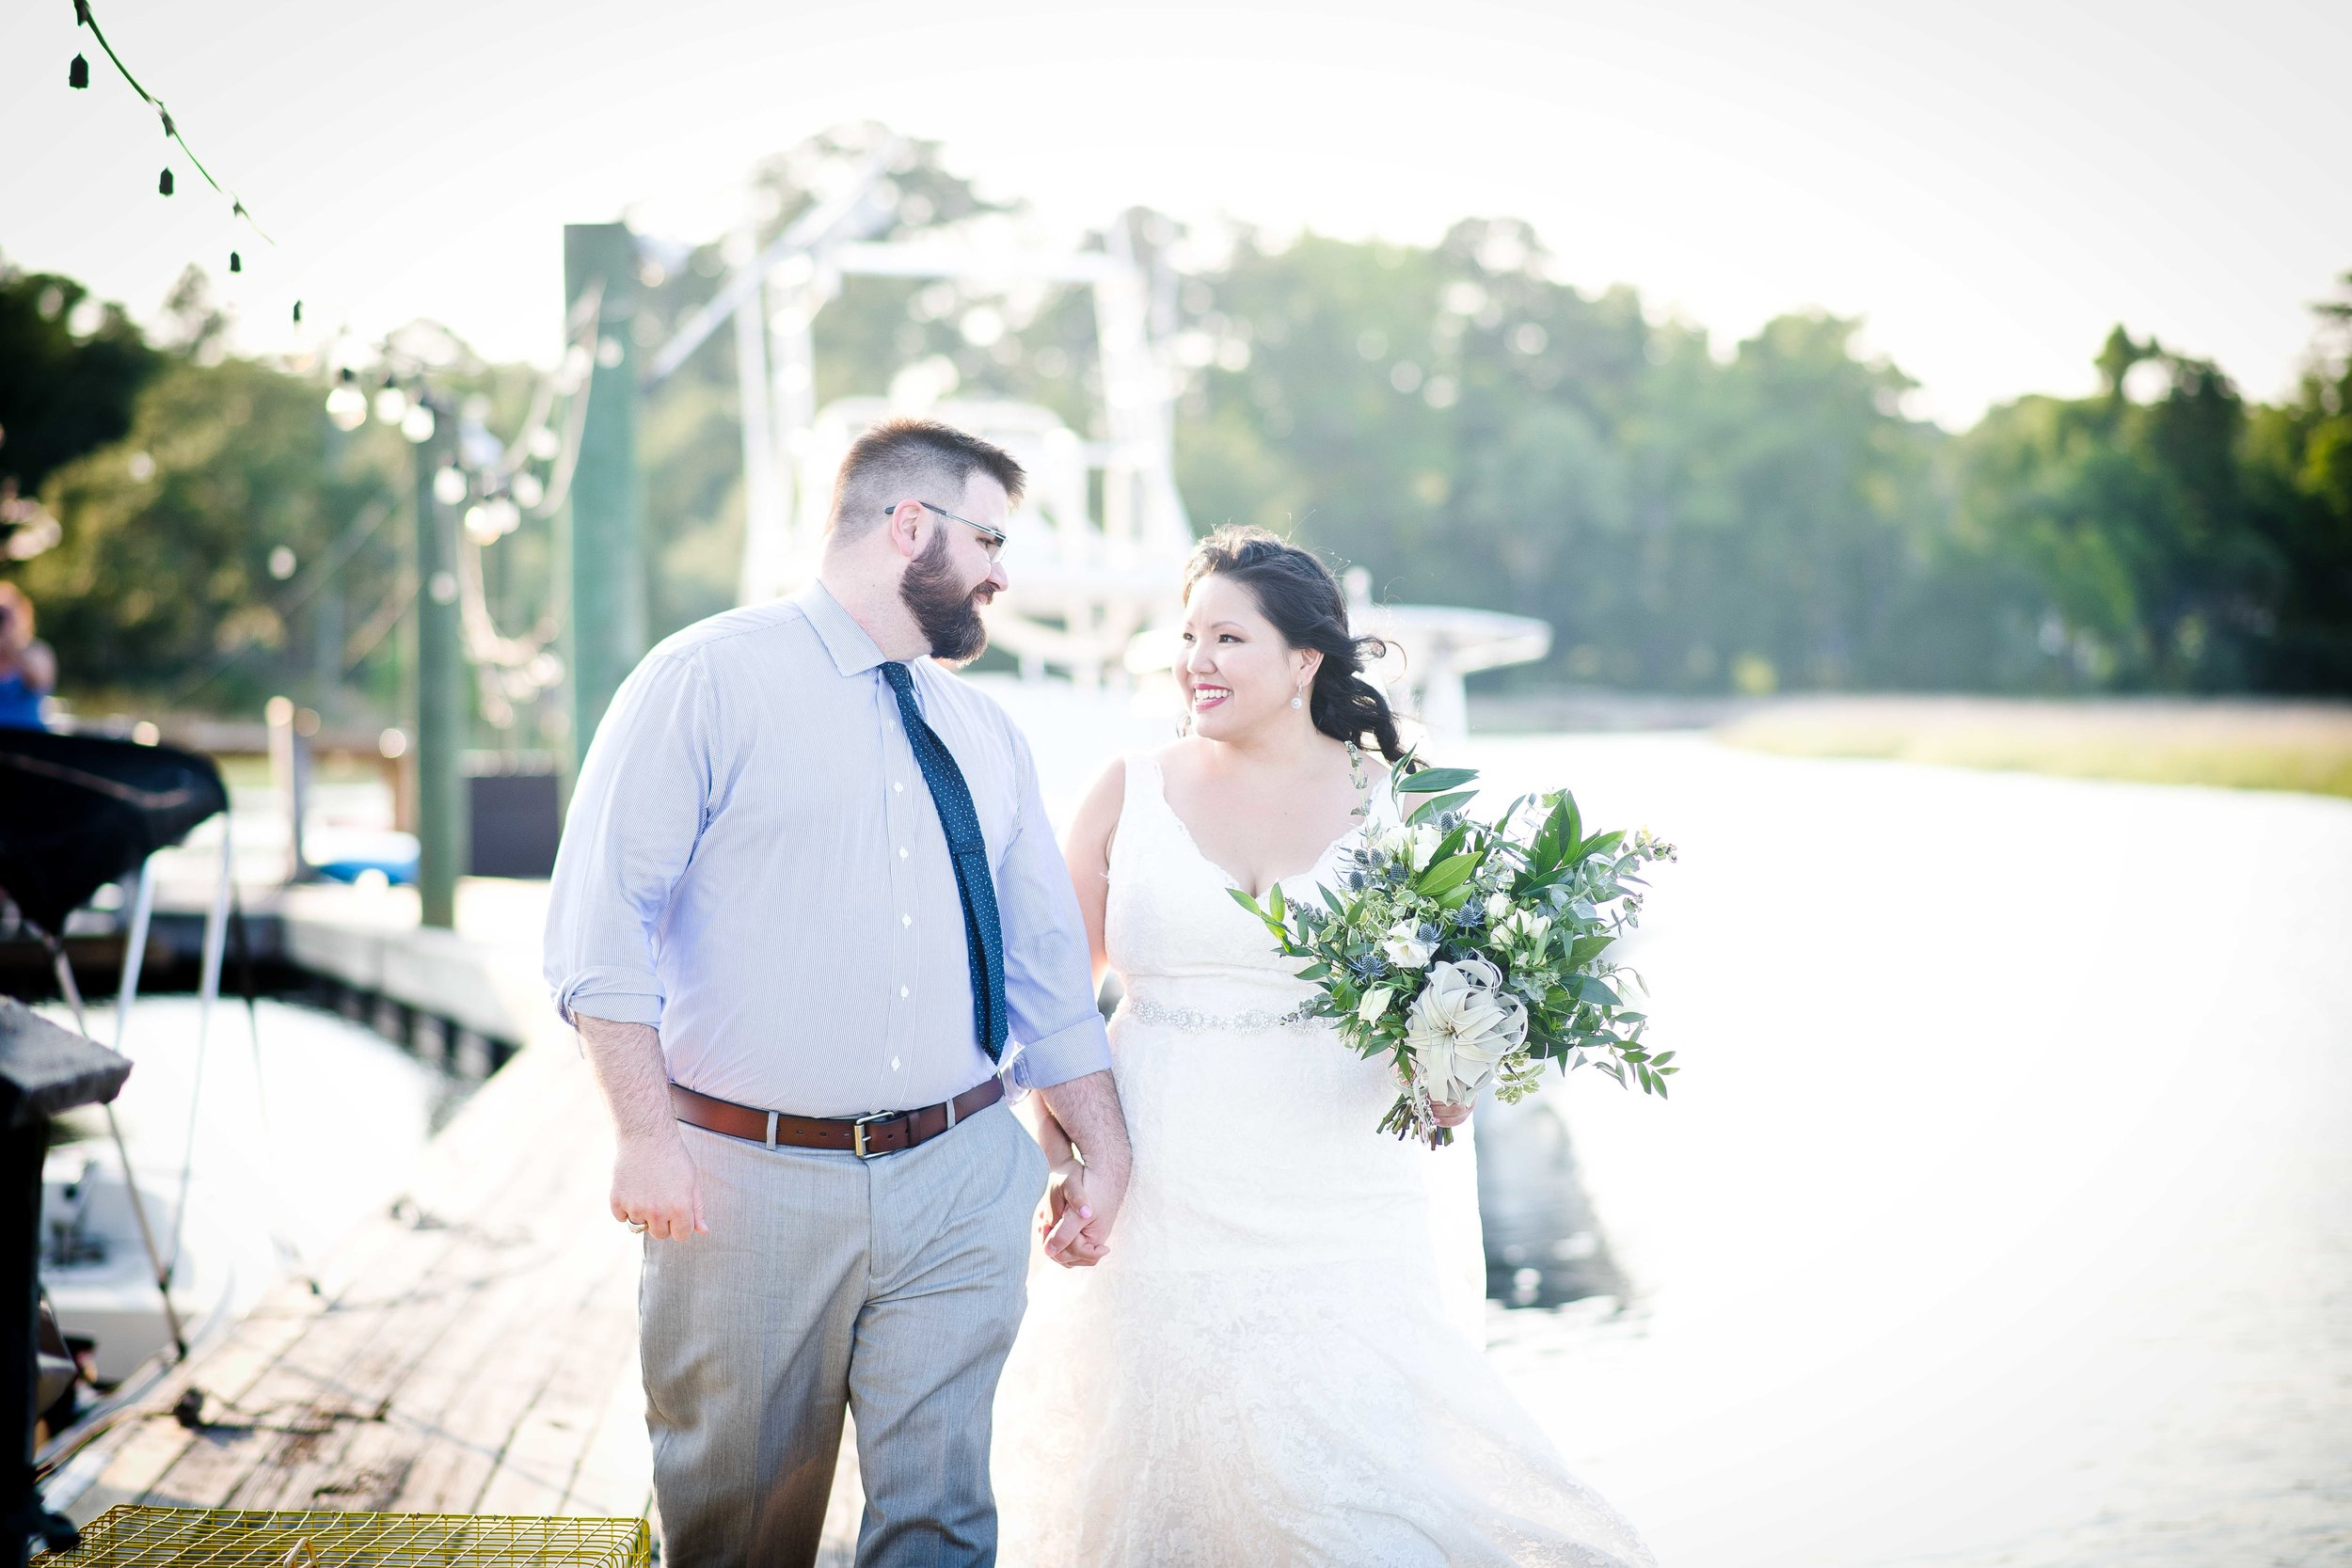 Tina-and-Javin-Bride-And-Groom-Savannah-Weddings-Dockside-Weddings-Savannah-Weddings-Savannah-Florist-The-Wyld-Venue-Lowcountry-Weddings-Natural-Weddings-Southern-Weddings-Couple-Wedding-Photos-Greenery-Bouquets-Natural-Color-Scheme.jpg